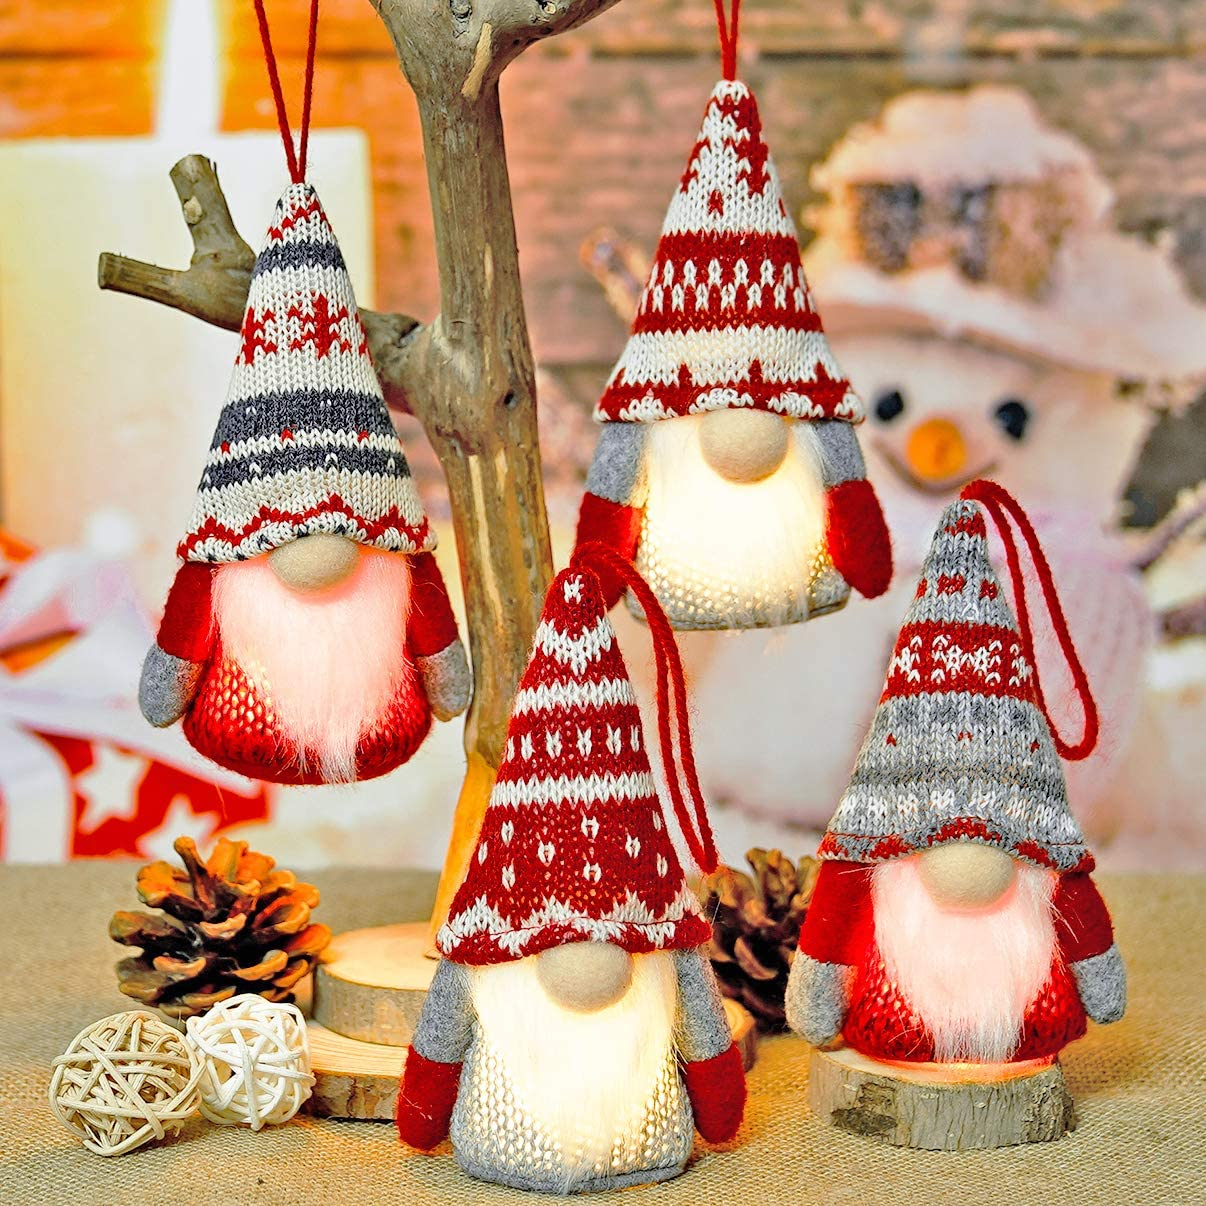 Gnome Christmas Decor Ornaments Set of 4, Handmade Swedish Tomte Gnomes Plush Scandinavian Santa Elf Table Ornaments Christmas Tree Hanging Decoration Home Decor